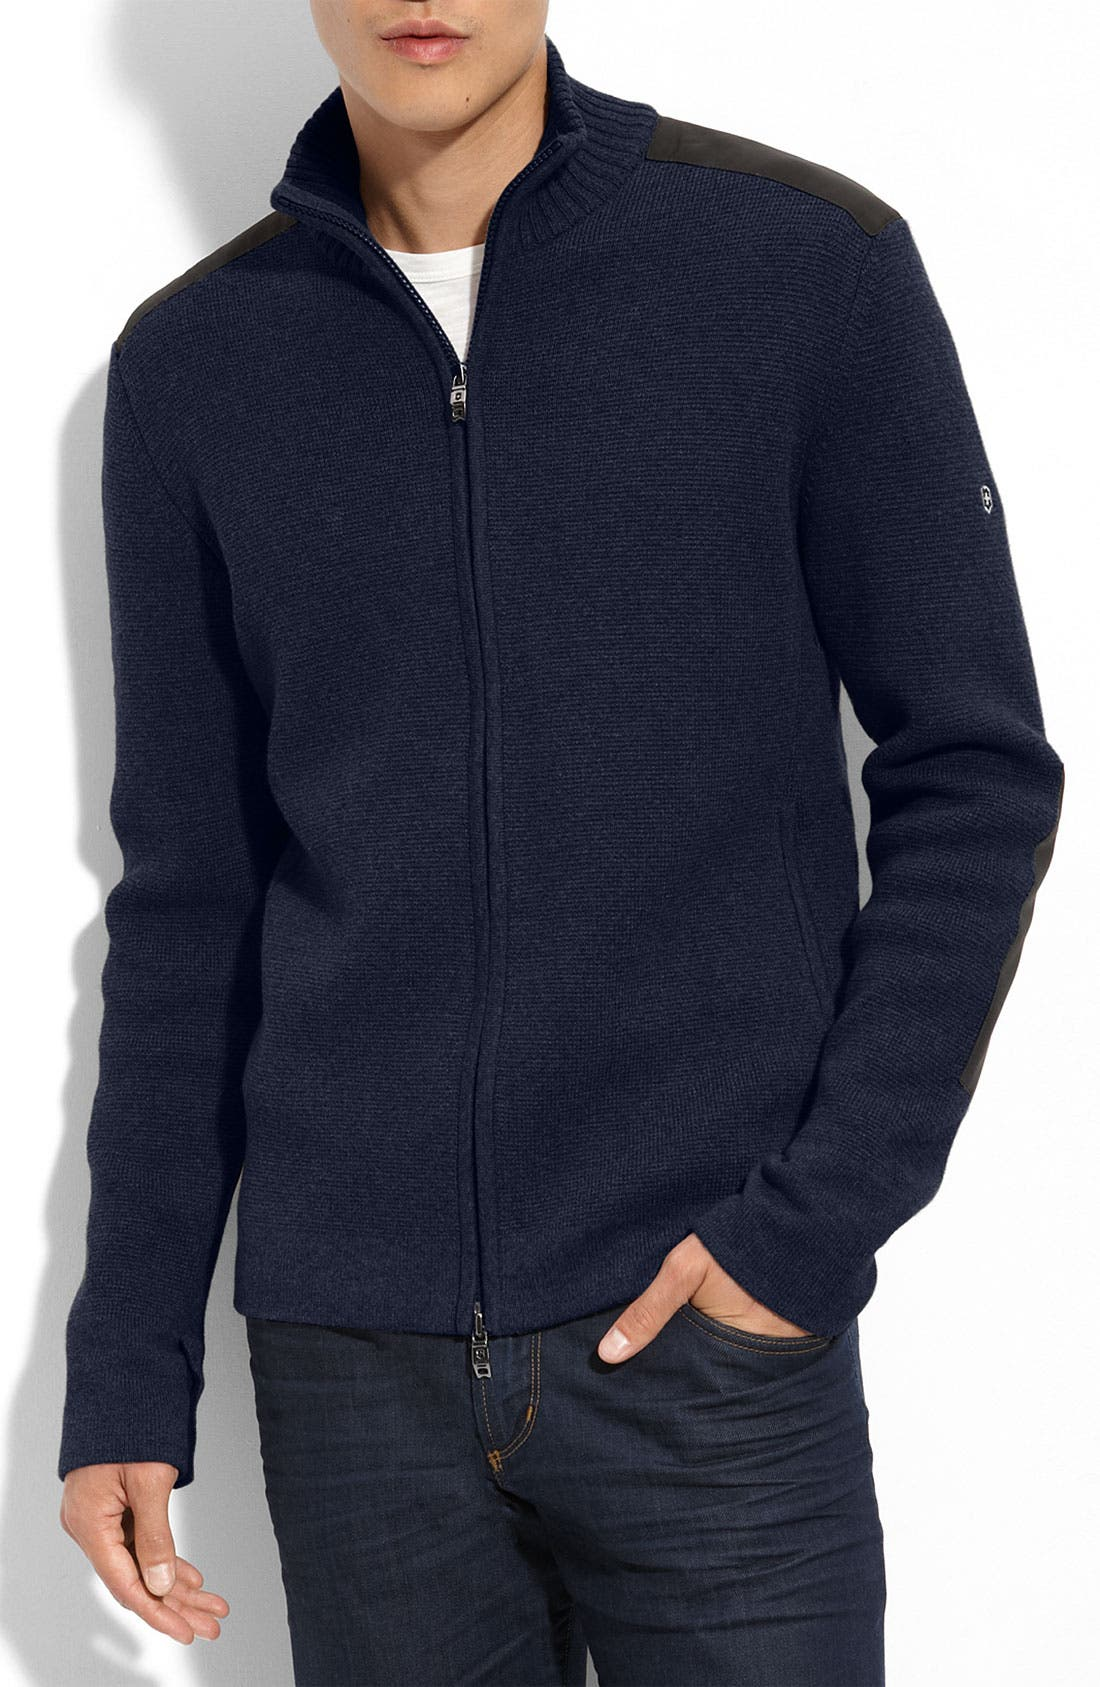 Alternate Image 1 Selected - Victorinox Swiss Army® 'Mahale' Stretch Cotton Cardigan (Online Only)